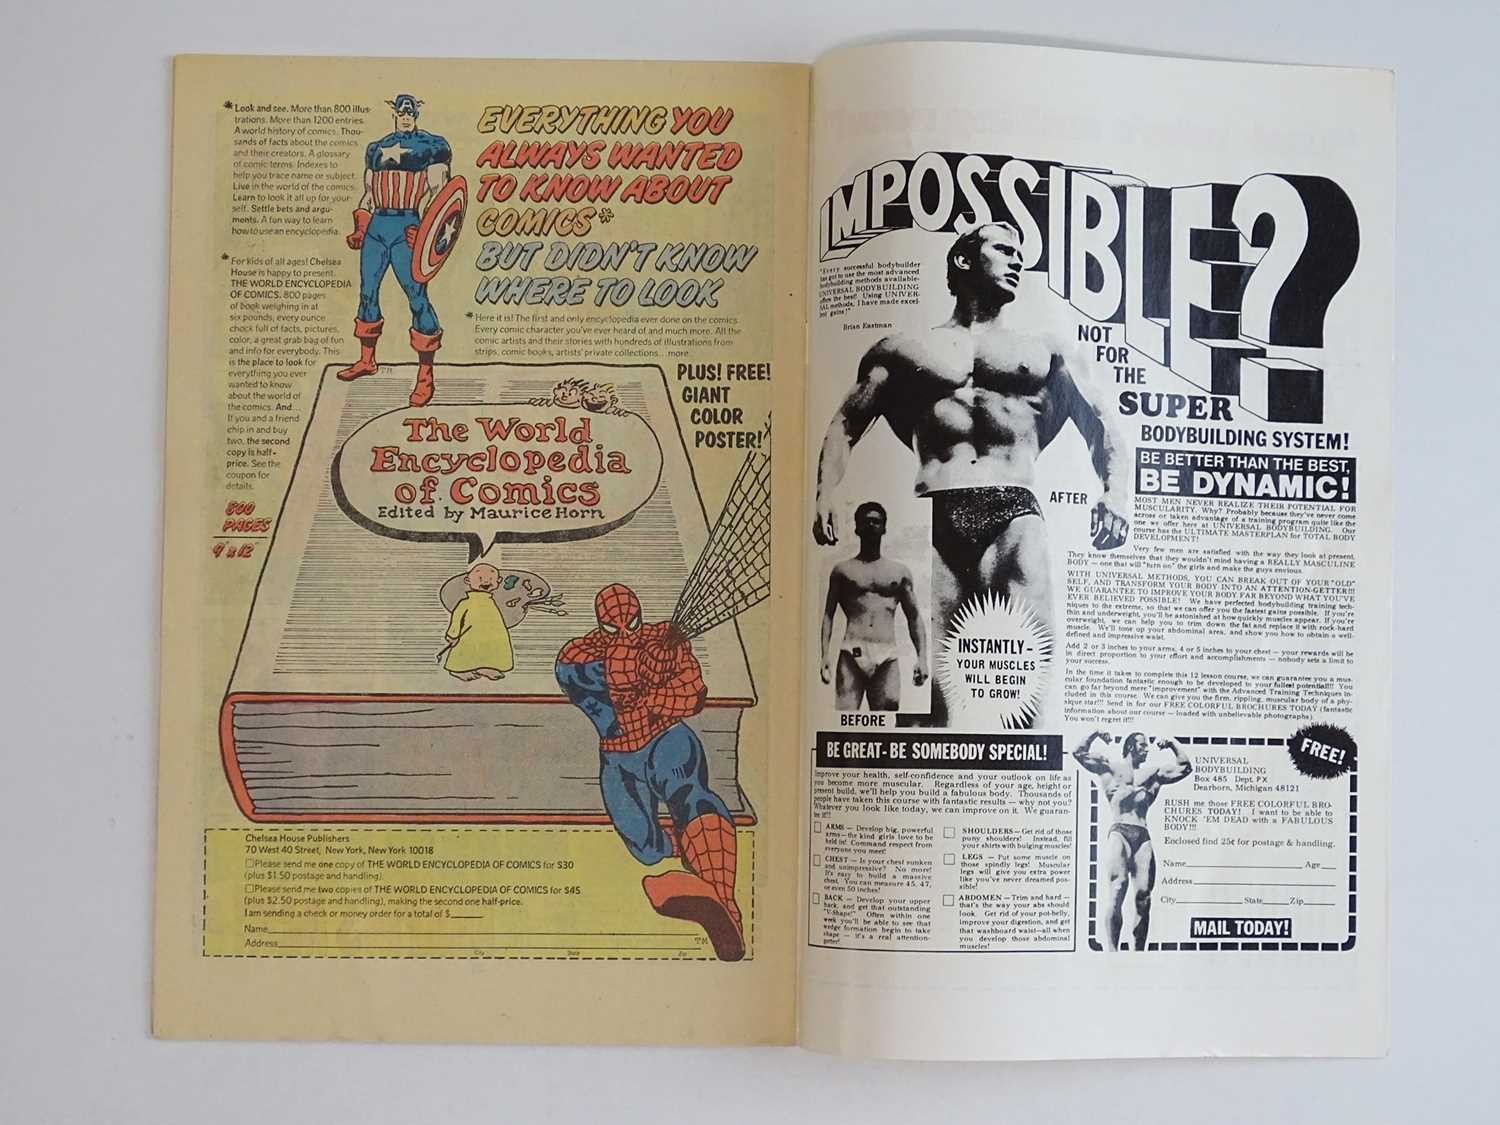 AMAZING SPIDER-MAN #162 - (1976 - MARVEL) - First full appearance of Jigsaw and Dr. Maria - Image 4 of 9